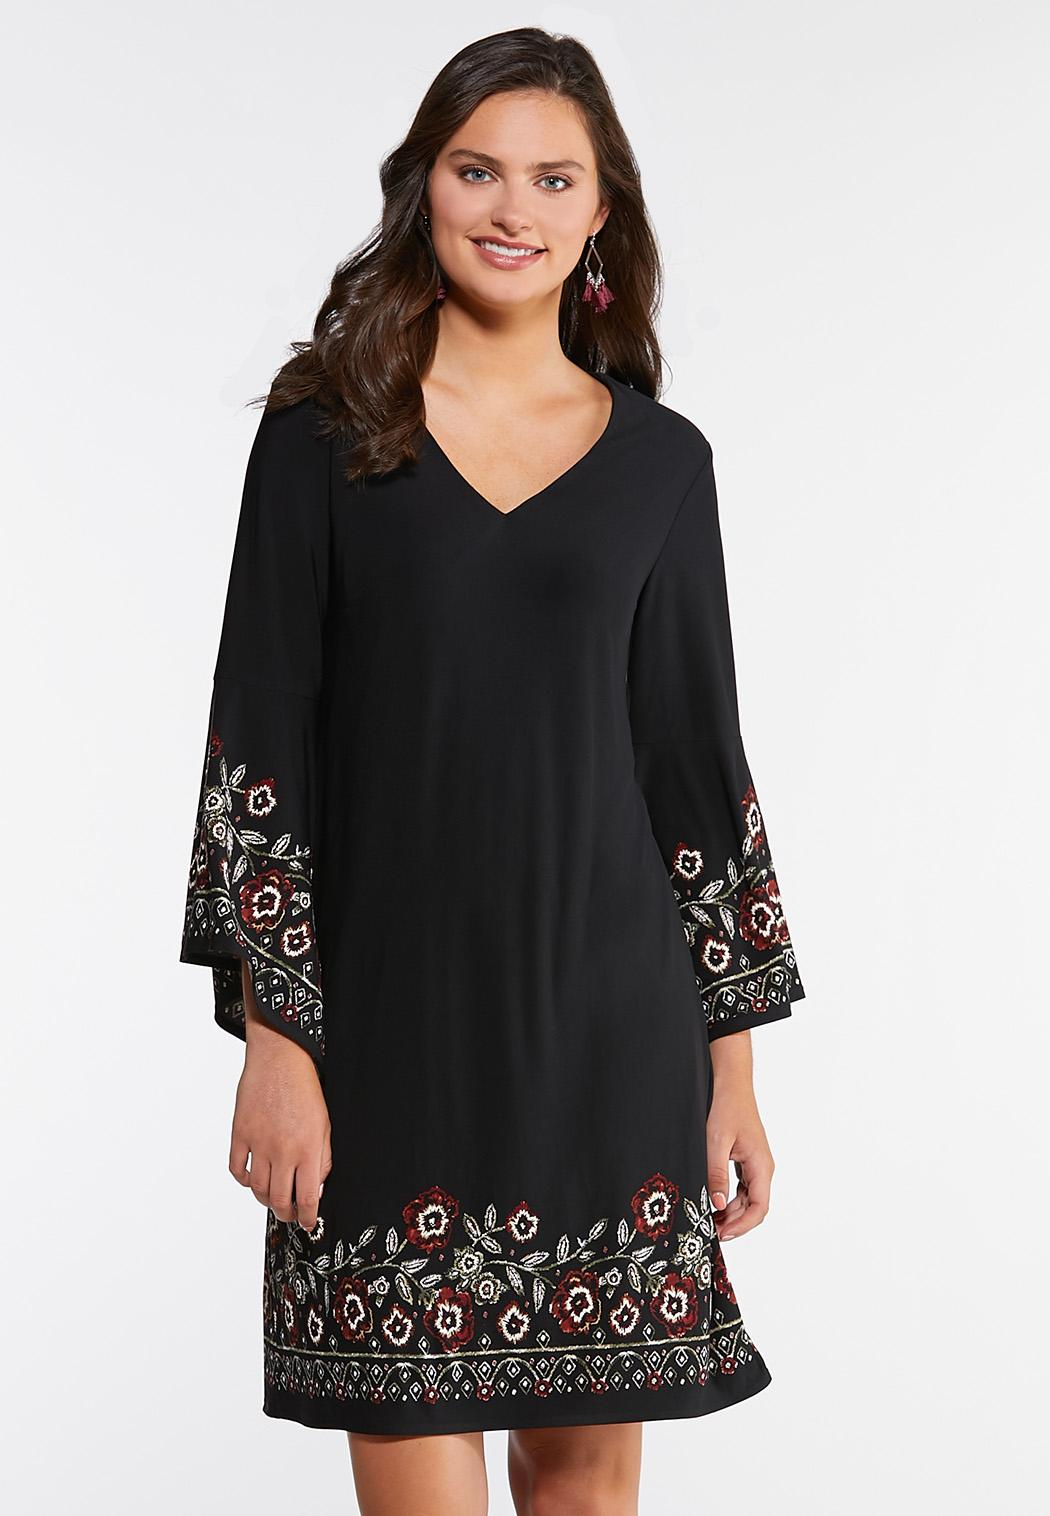 Plus Size Floral Puff Swing Dress A- Line & Amp ; Swing Cato Fashions